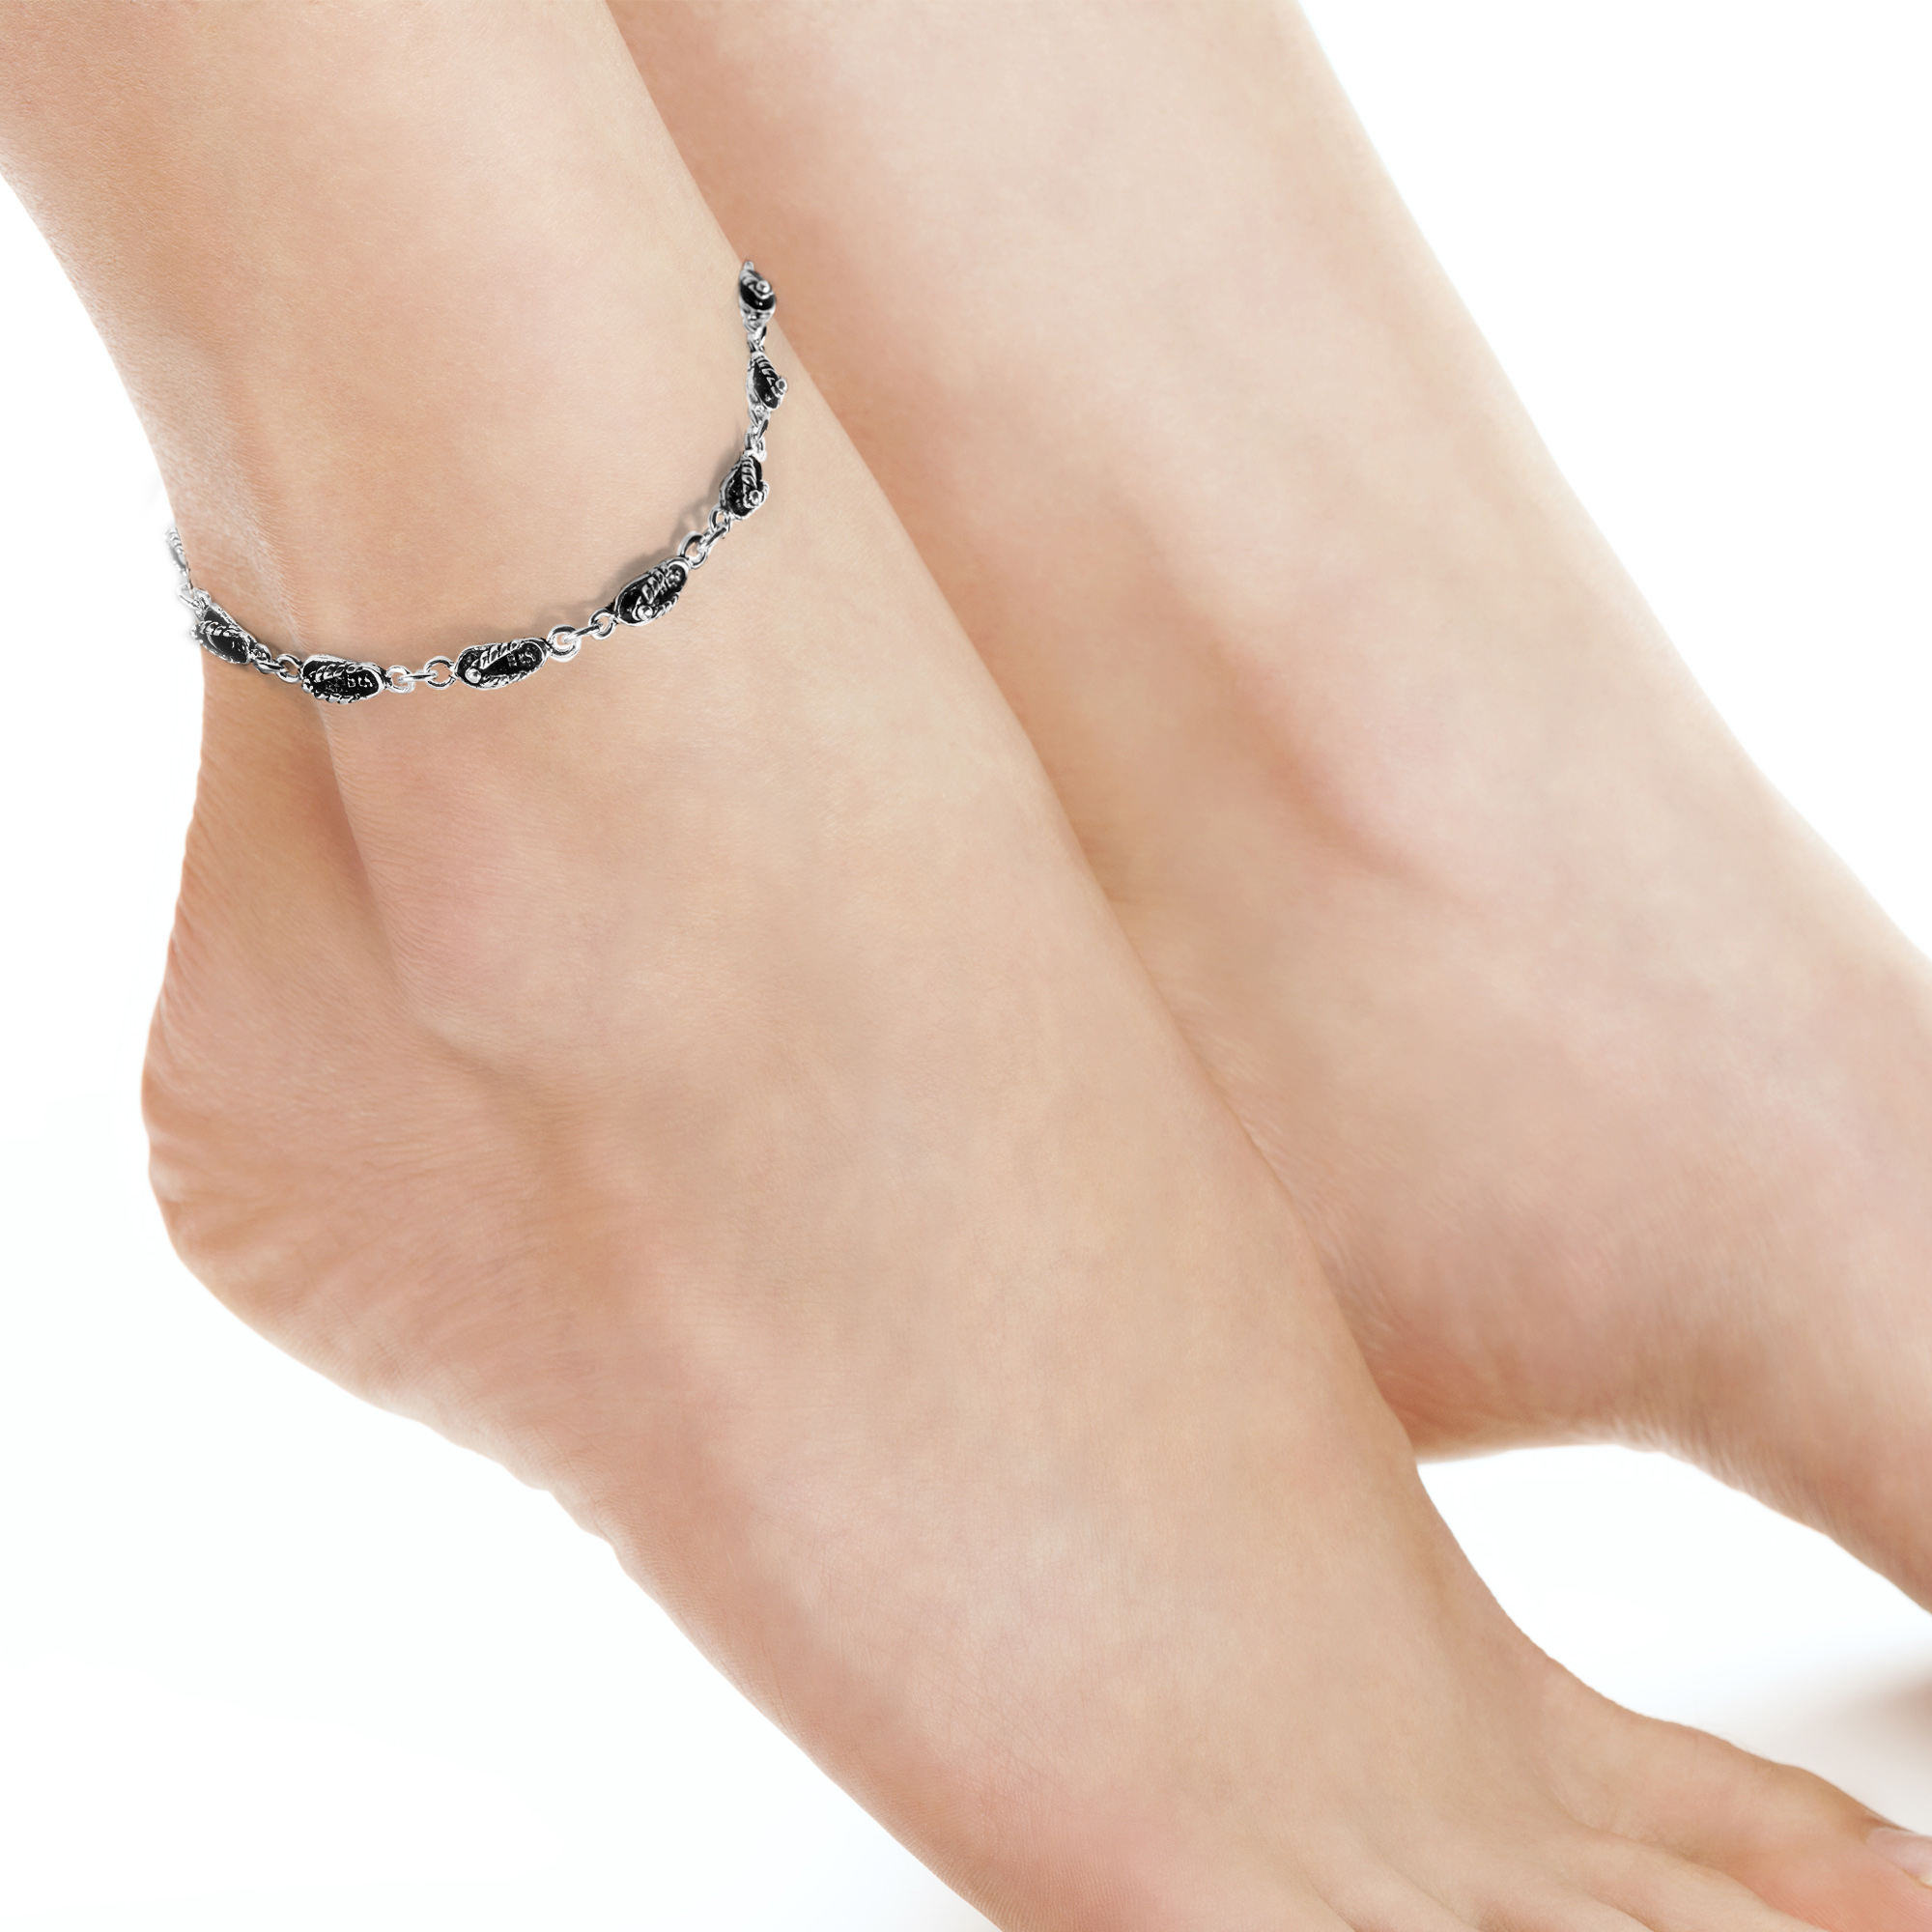 inches with plated jewellery inch anklet white stone s riya diamond silver payal chain p rabbi anklets